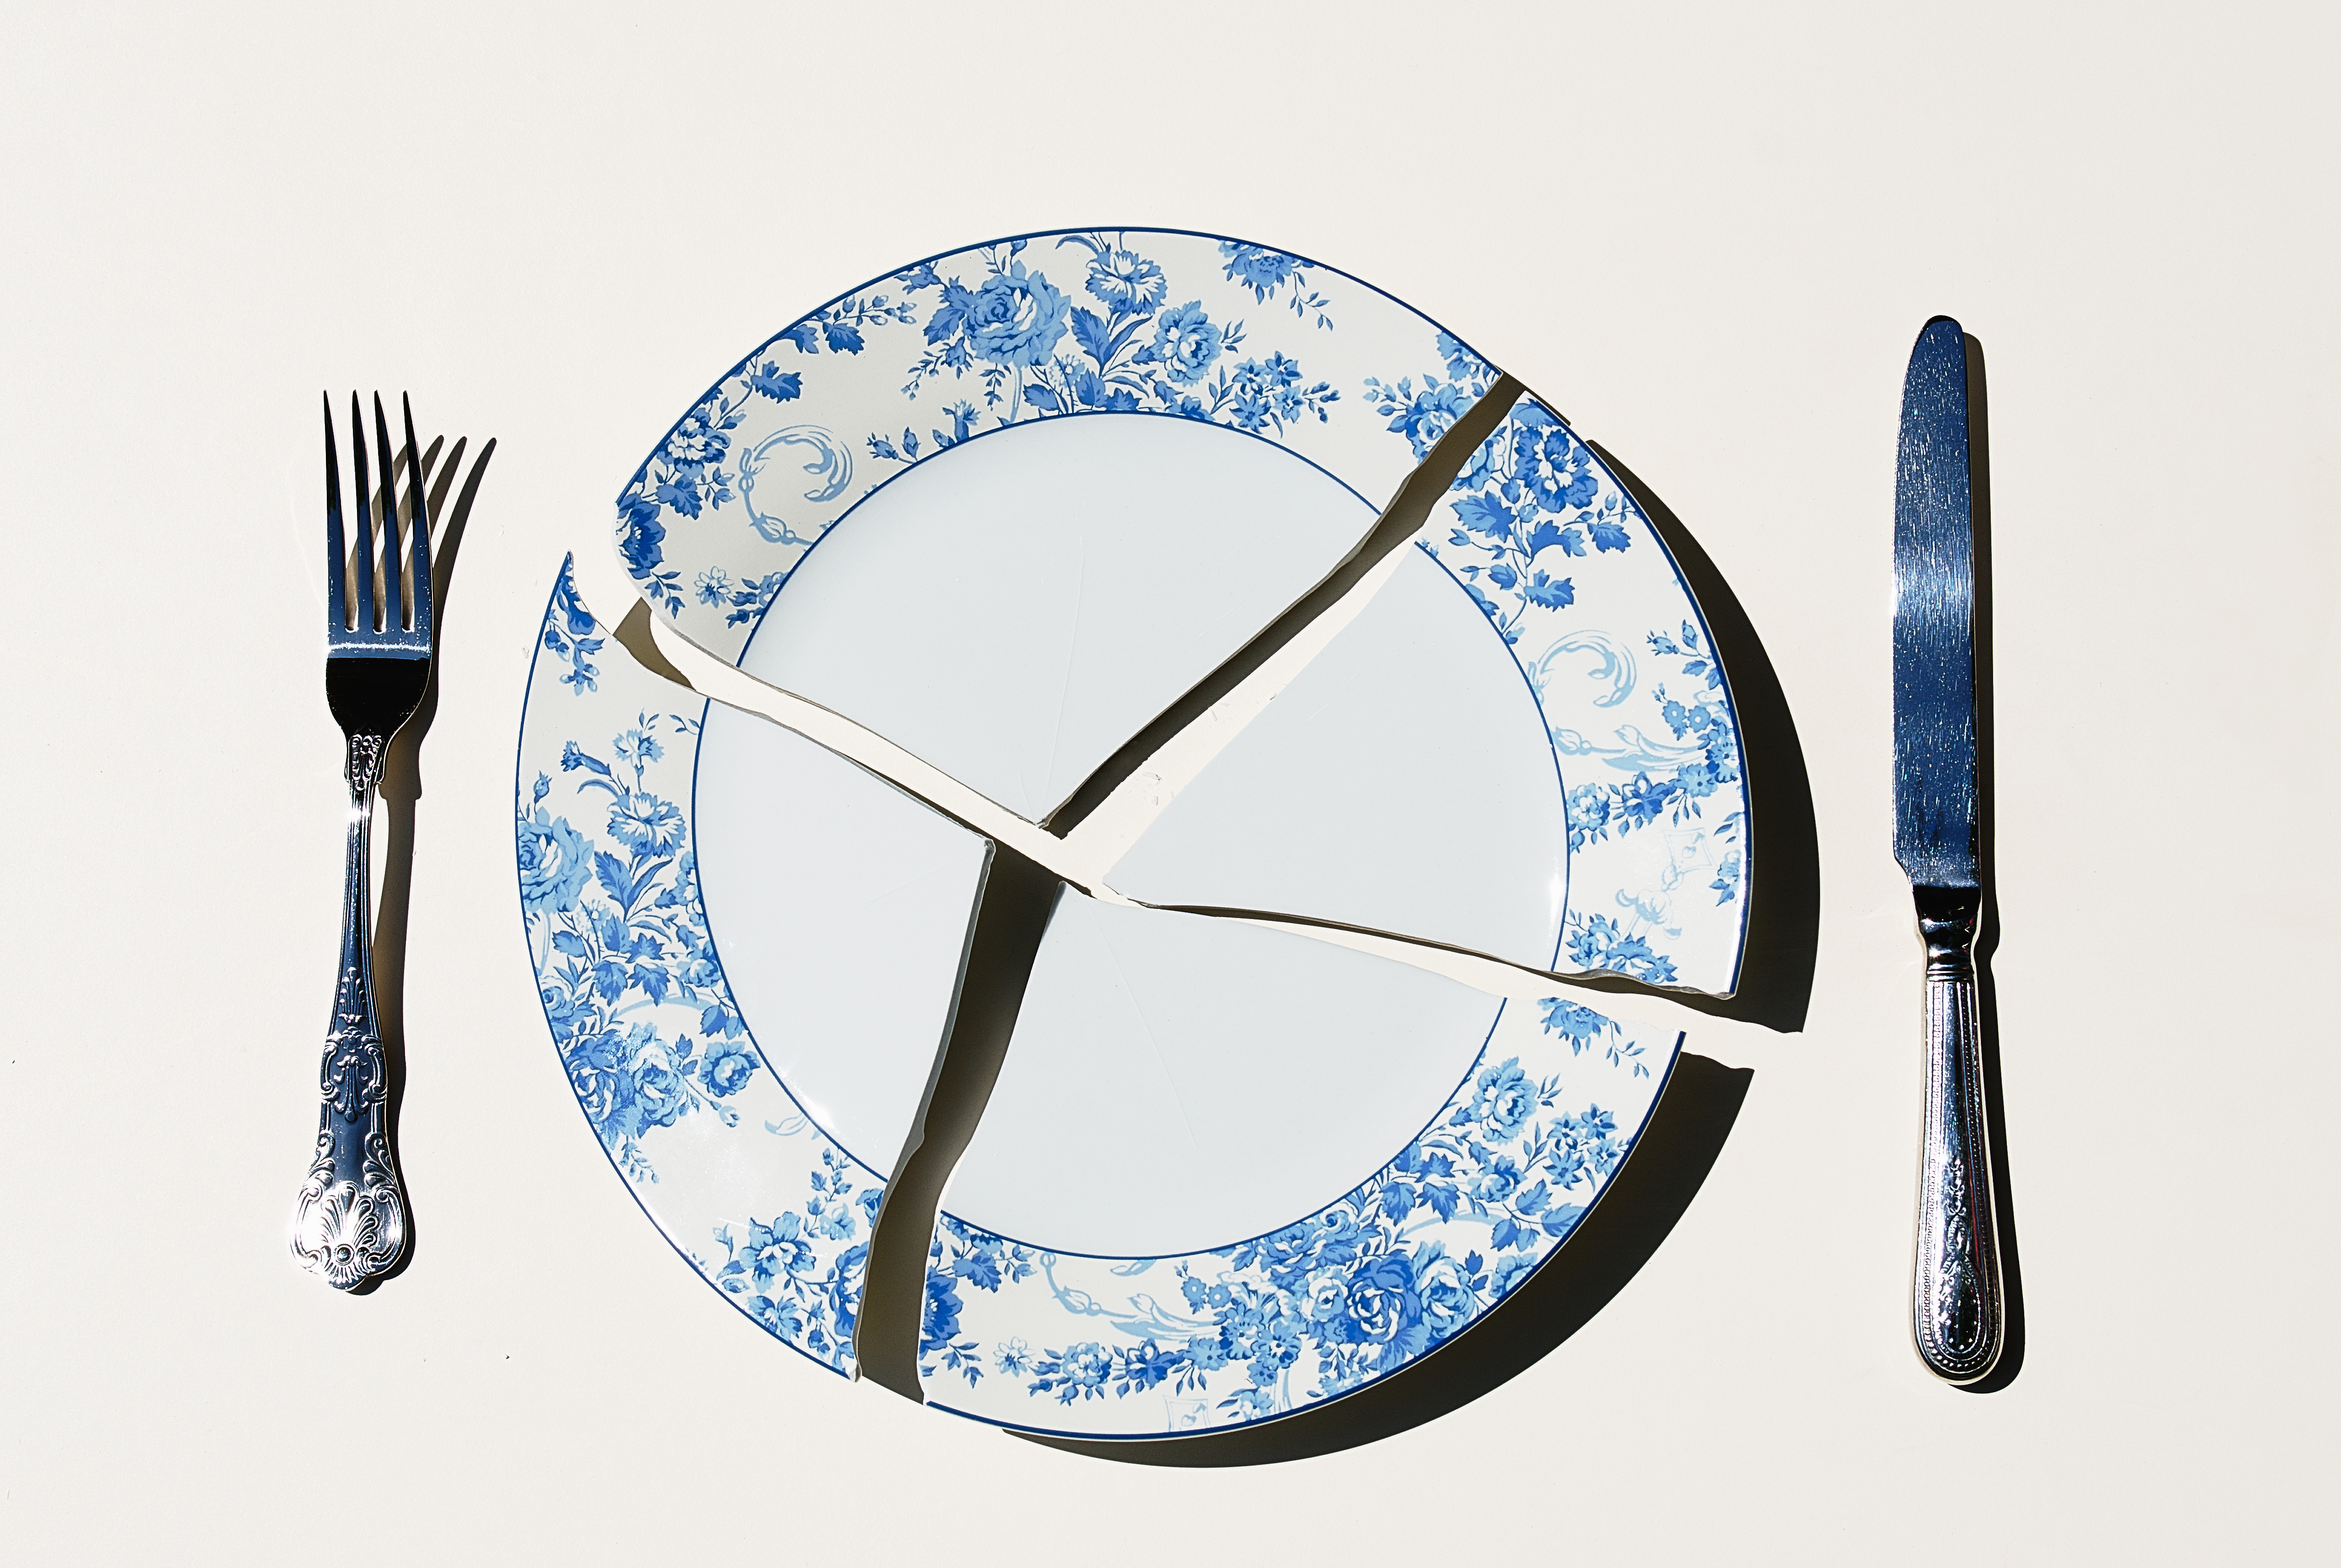 Broken plate with knife and fork on white background